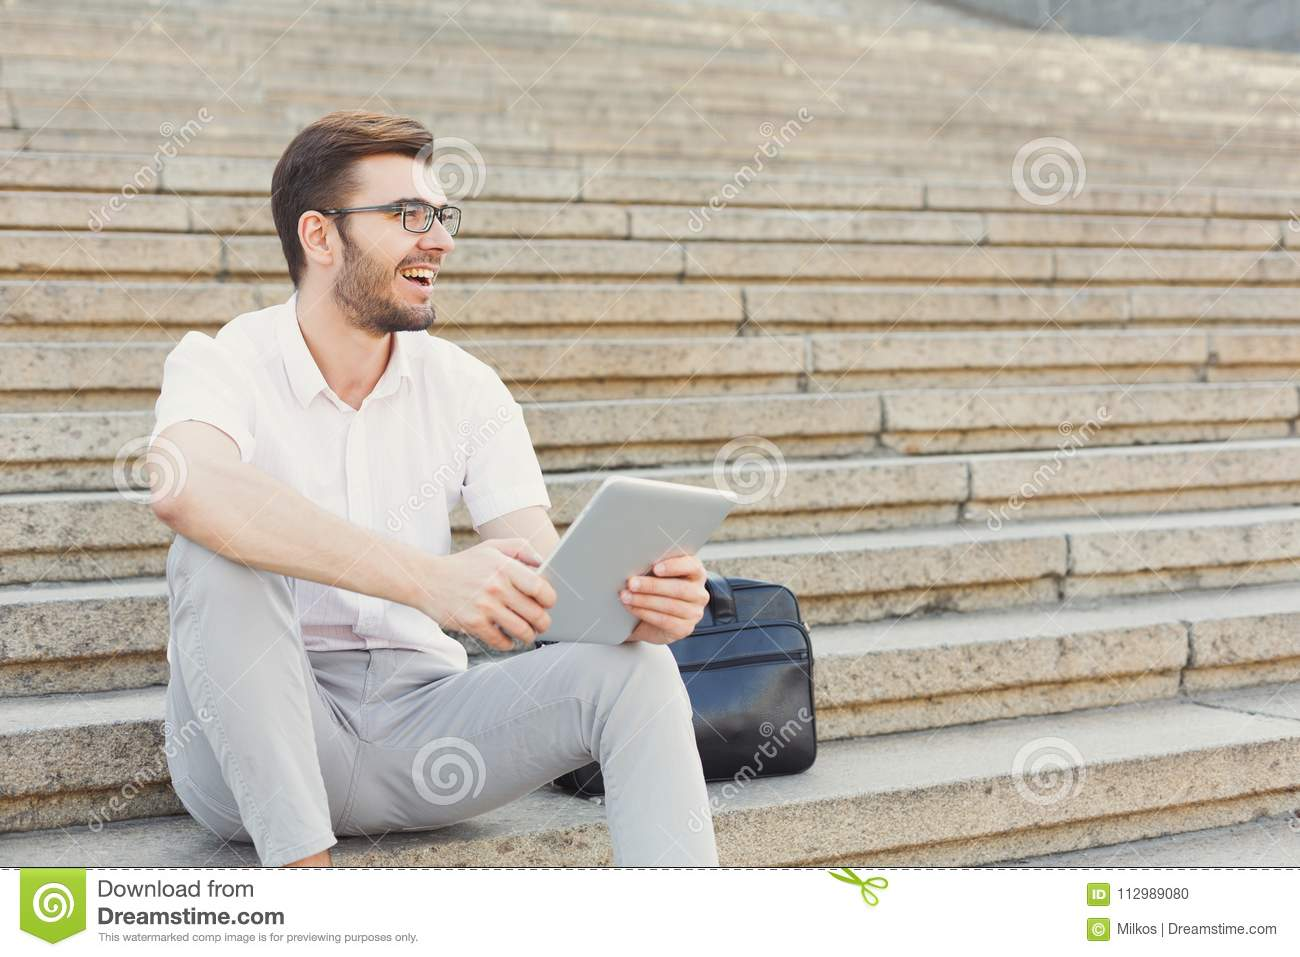 Young cheerful businessman using tablet outdoors